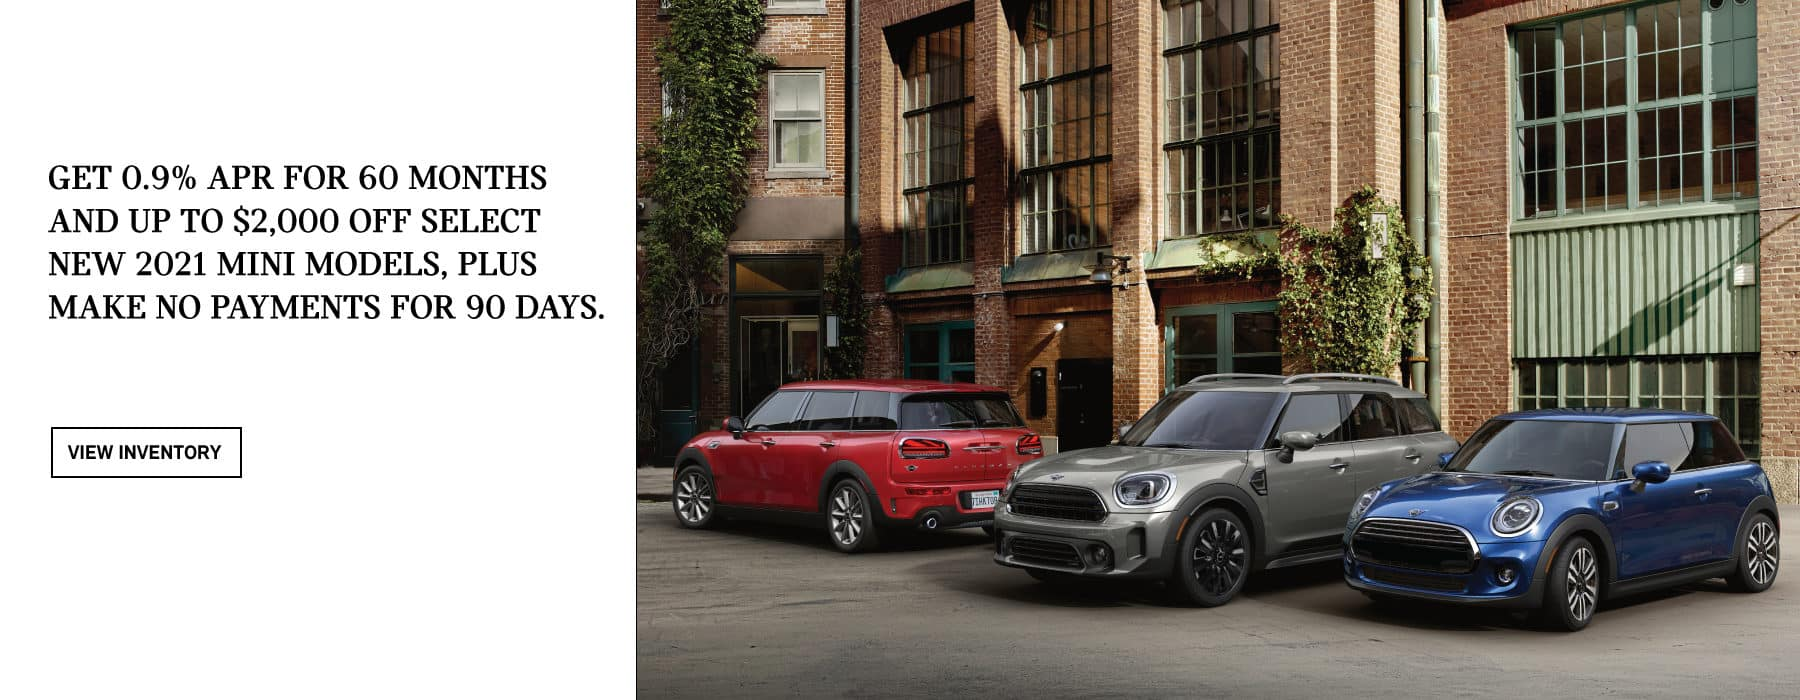 Get 0.9% APR for 60 months and up to $2,000 off select new 2021 MINI models, plus make no payments for 90 days. Valid through 06/01/21. Click to view inventory. See dealer for full details. Image shows three 2021 MINI vehicles parked near each other in an urban area.